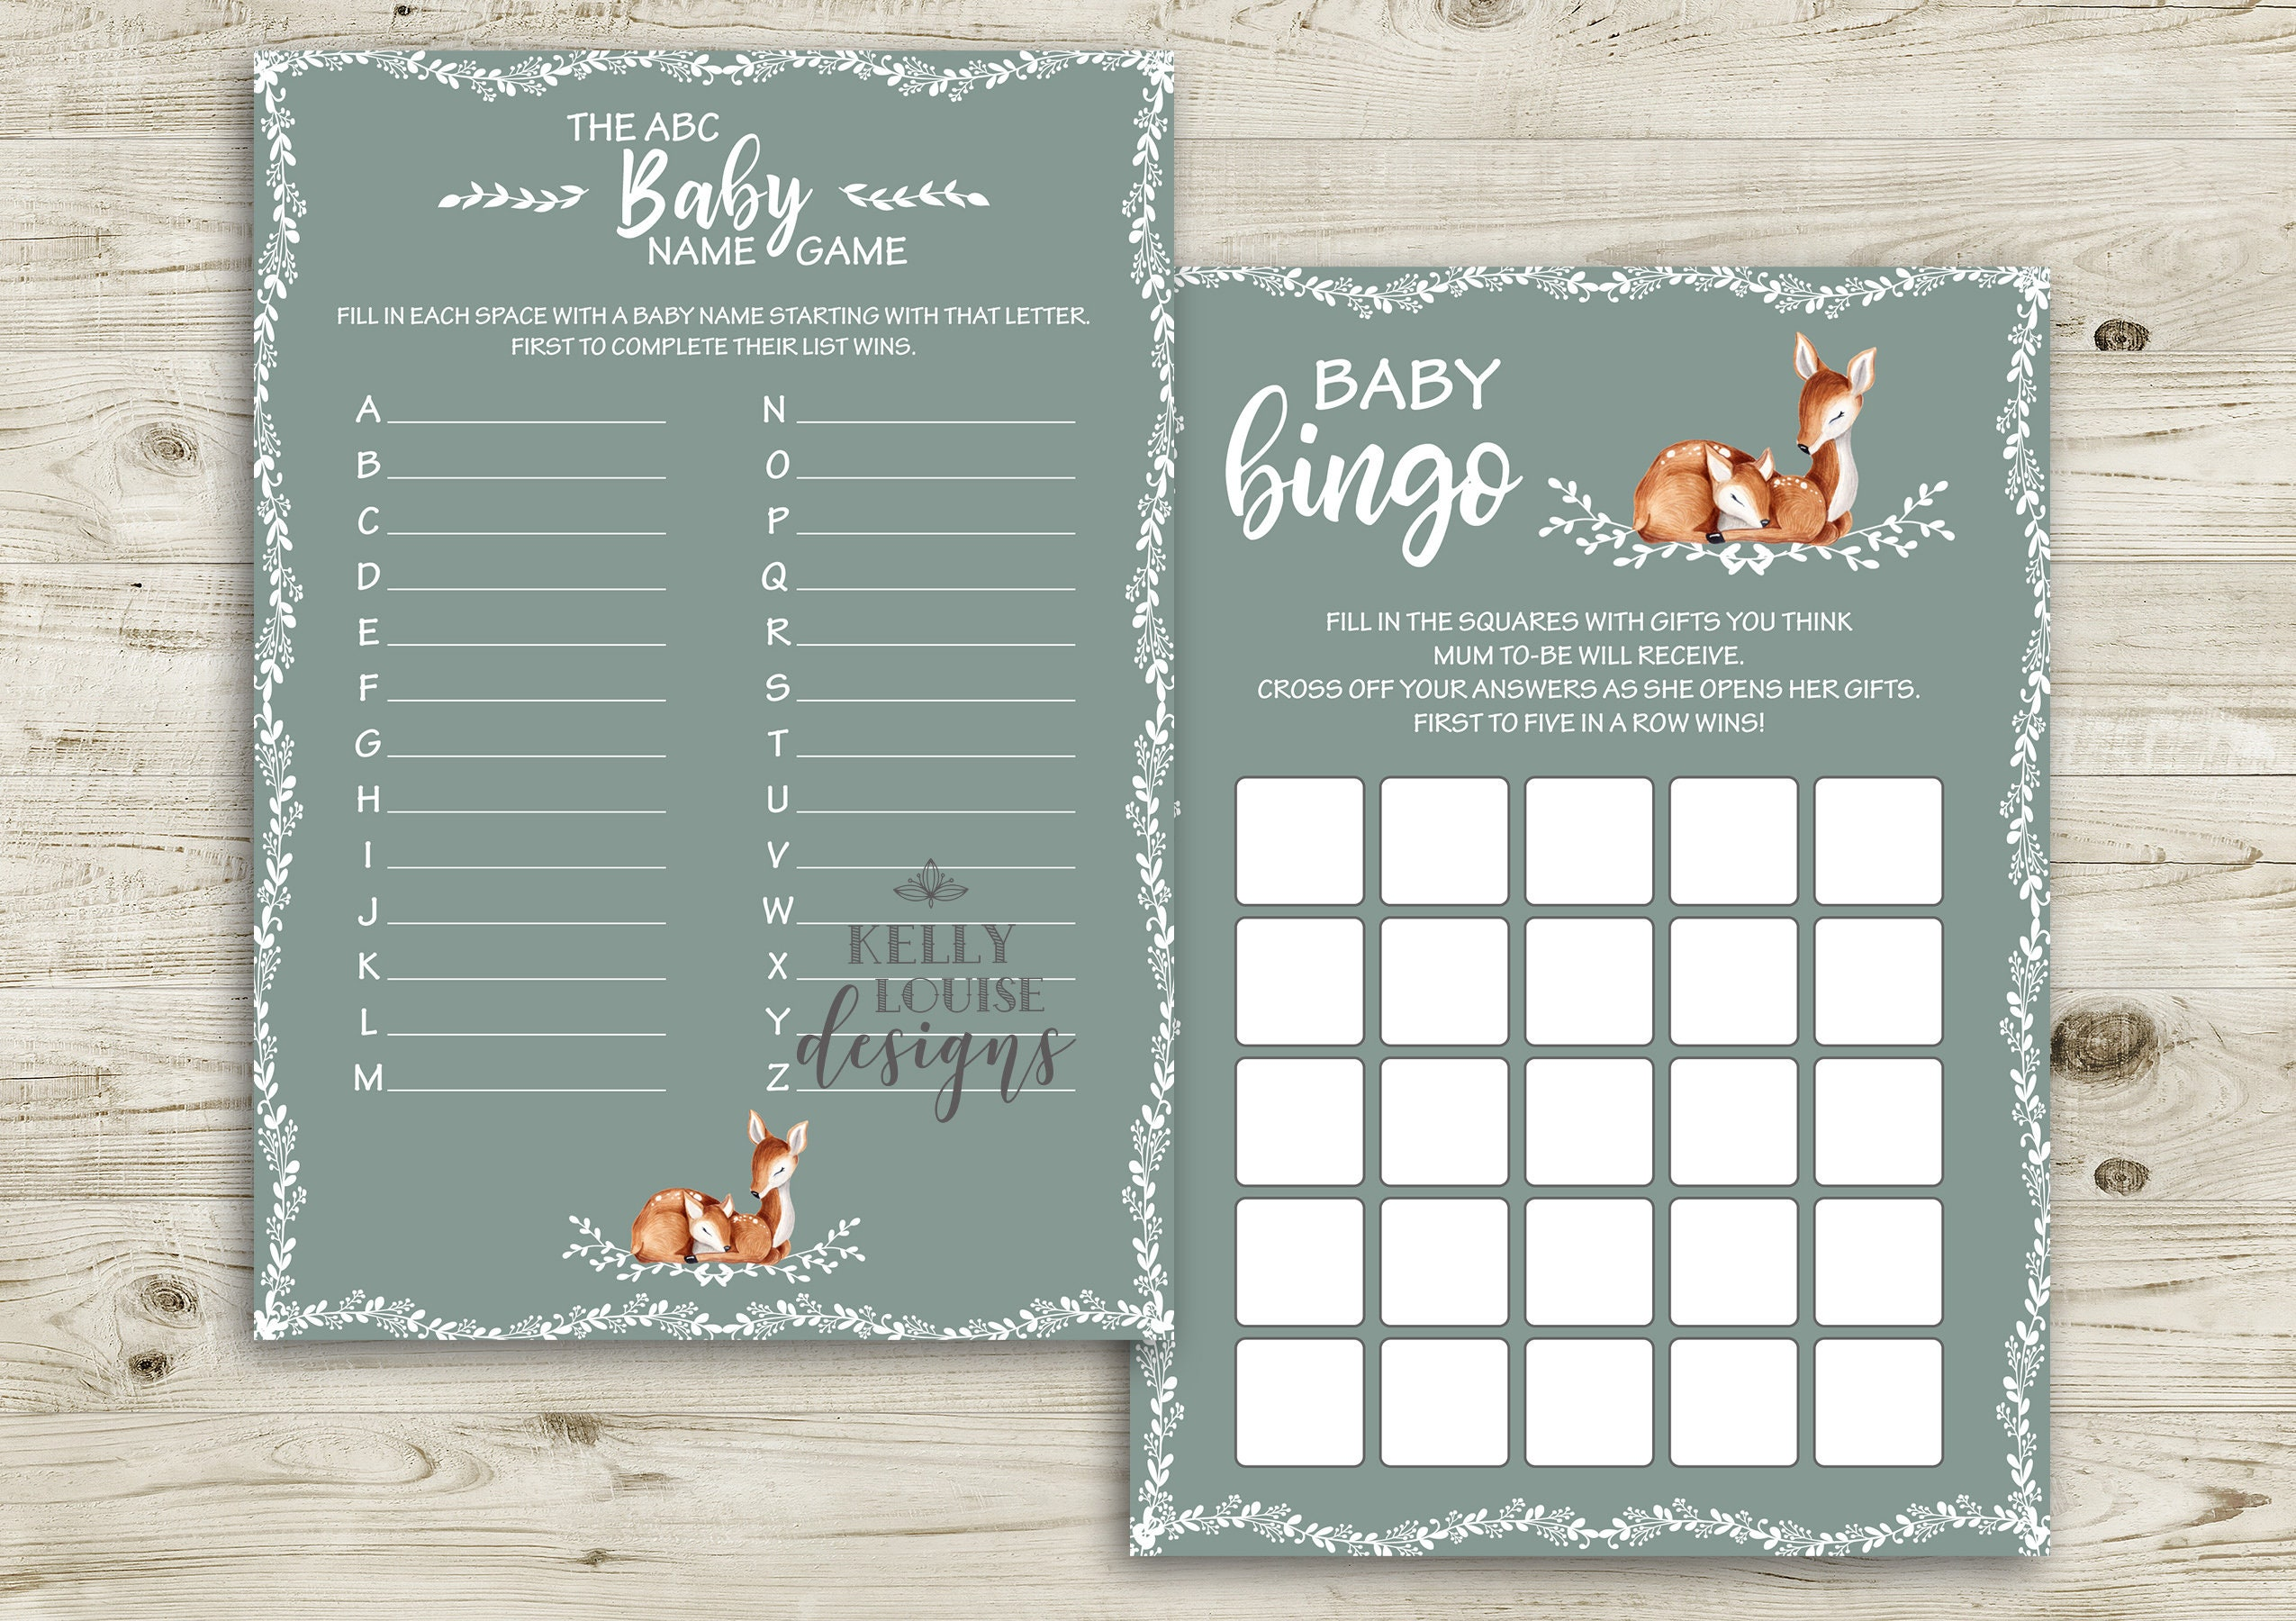 Bambi Baby Shower Games Printable Baby Shower Games Baby Shower